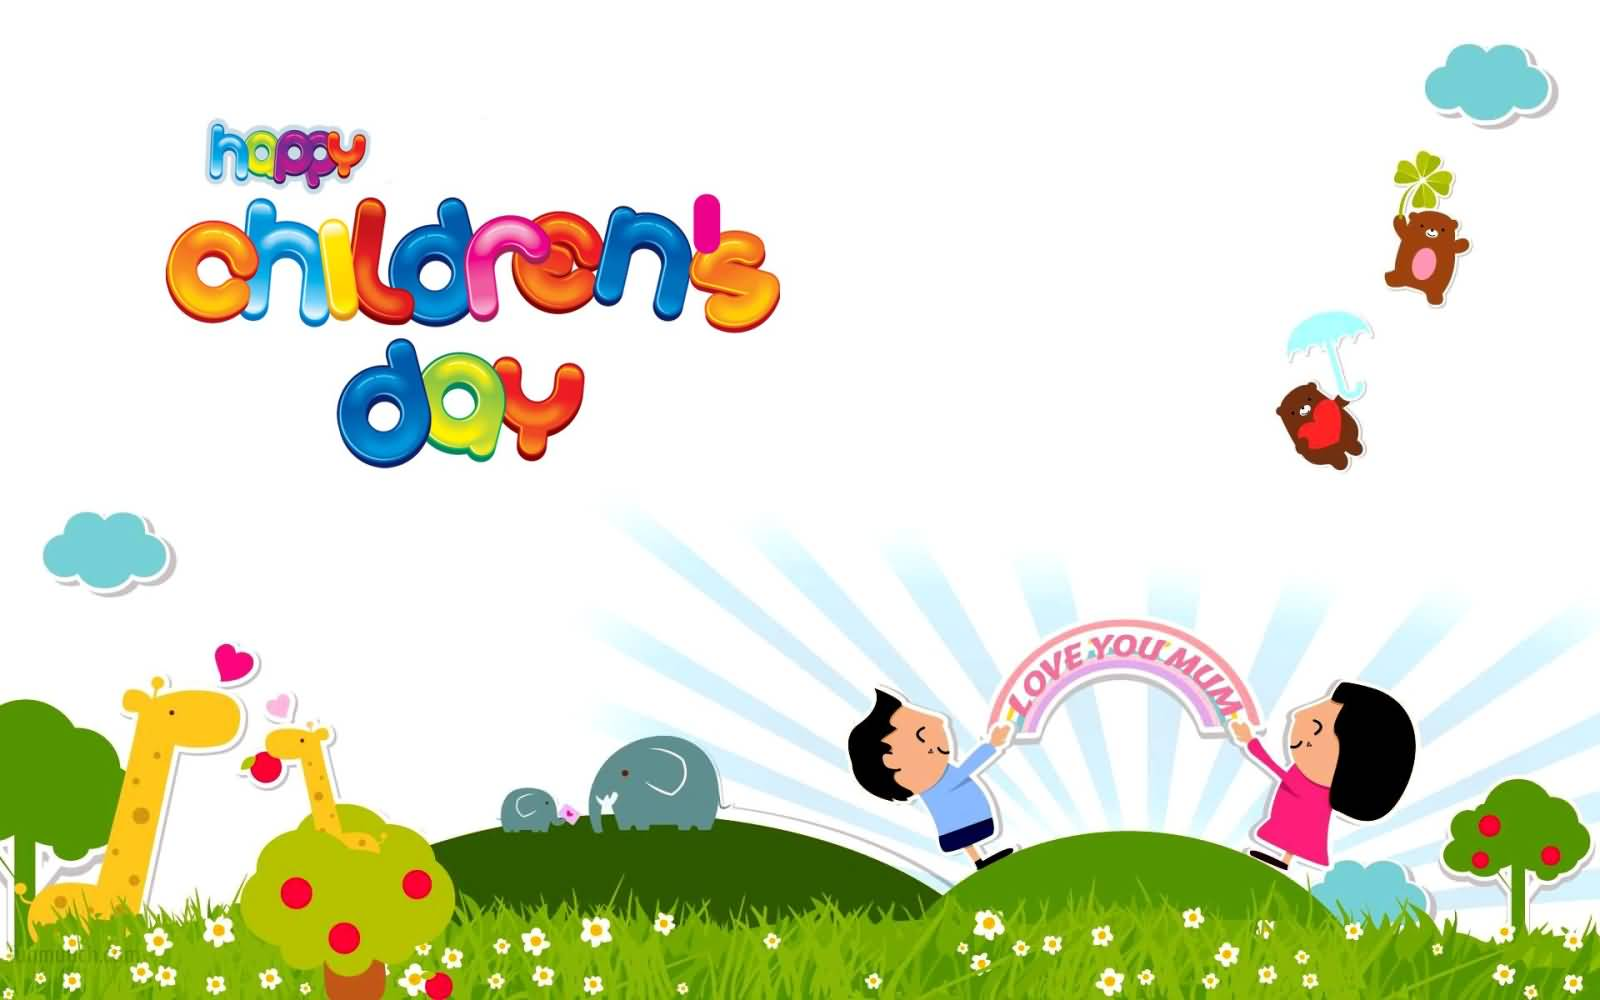 Funny Facebook Wallpaper Quotes Happy Children S Day Colourful Wallpaper